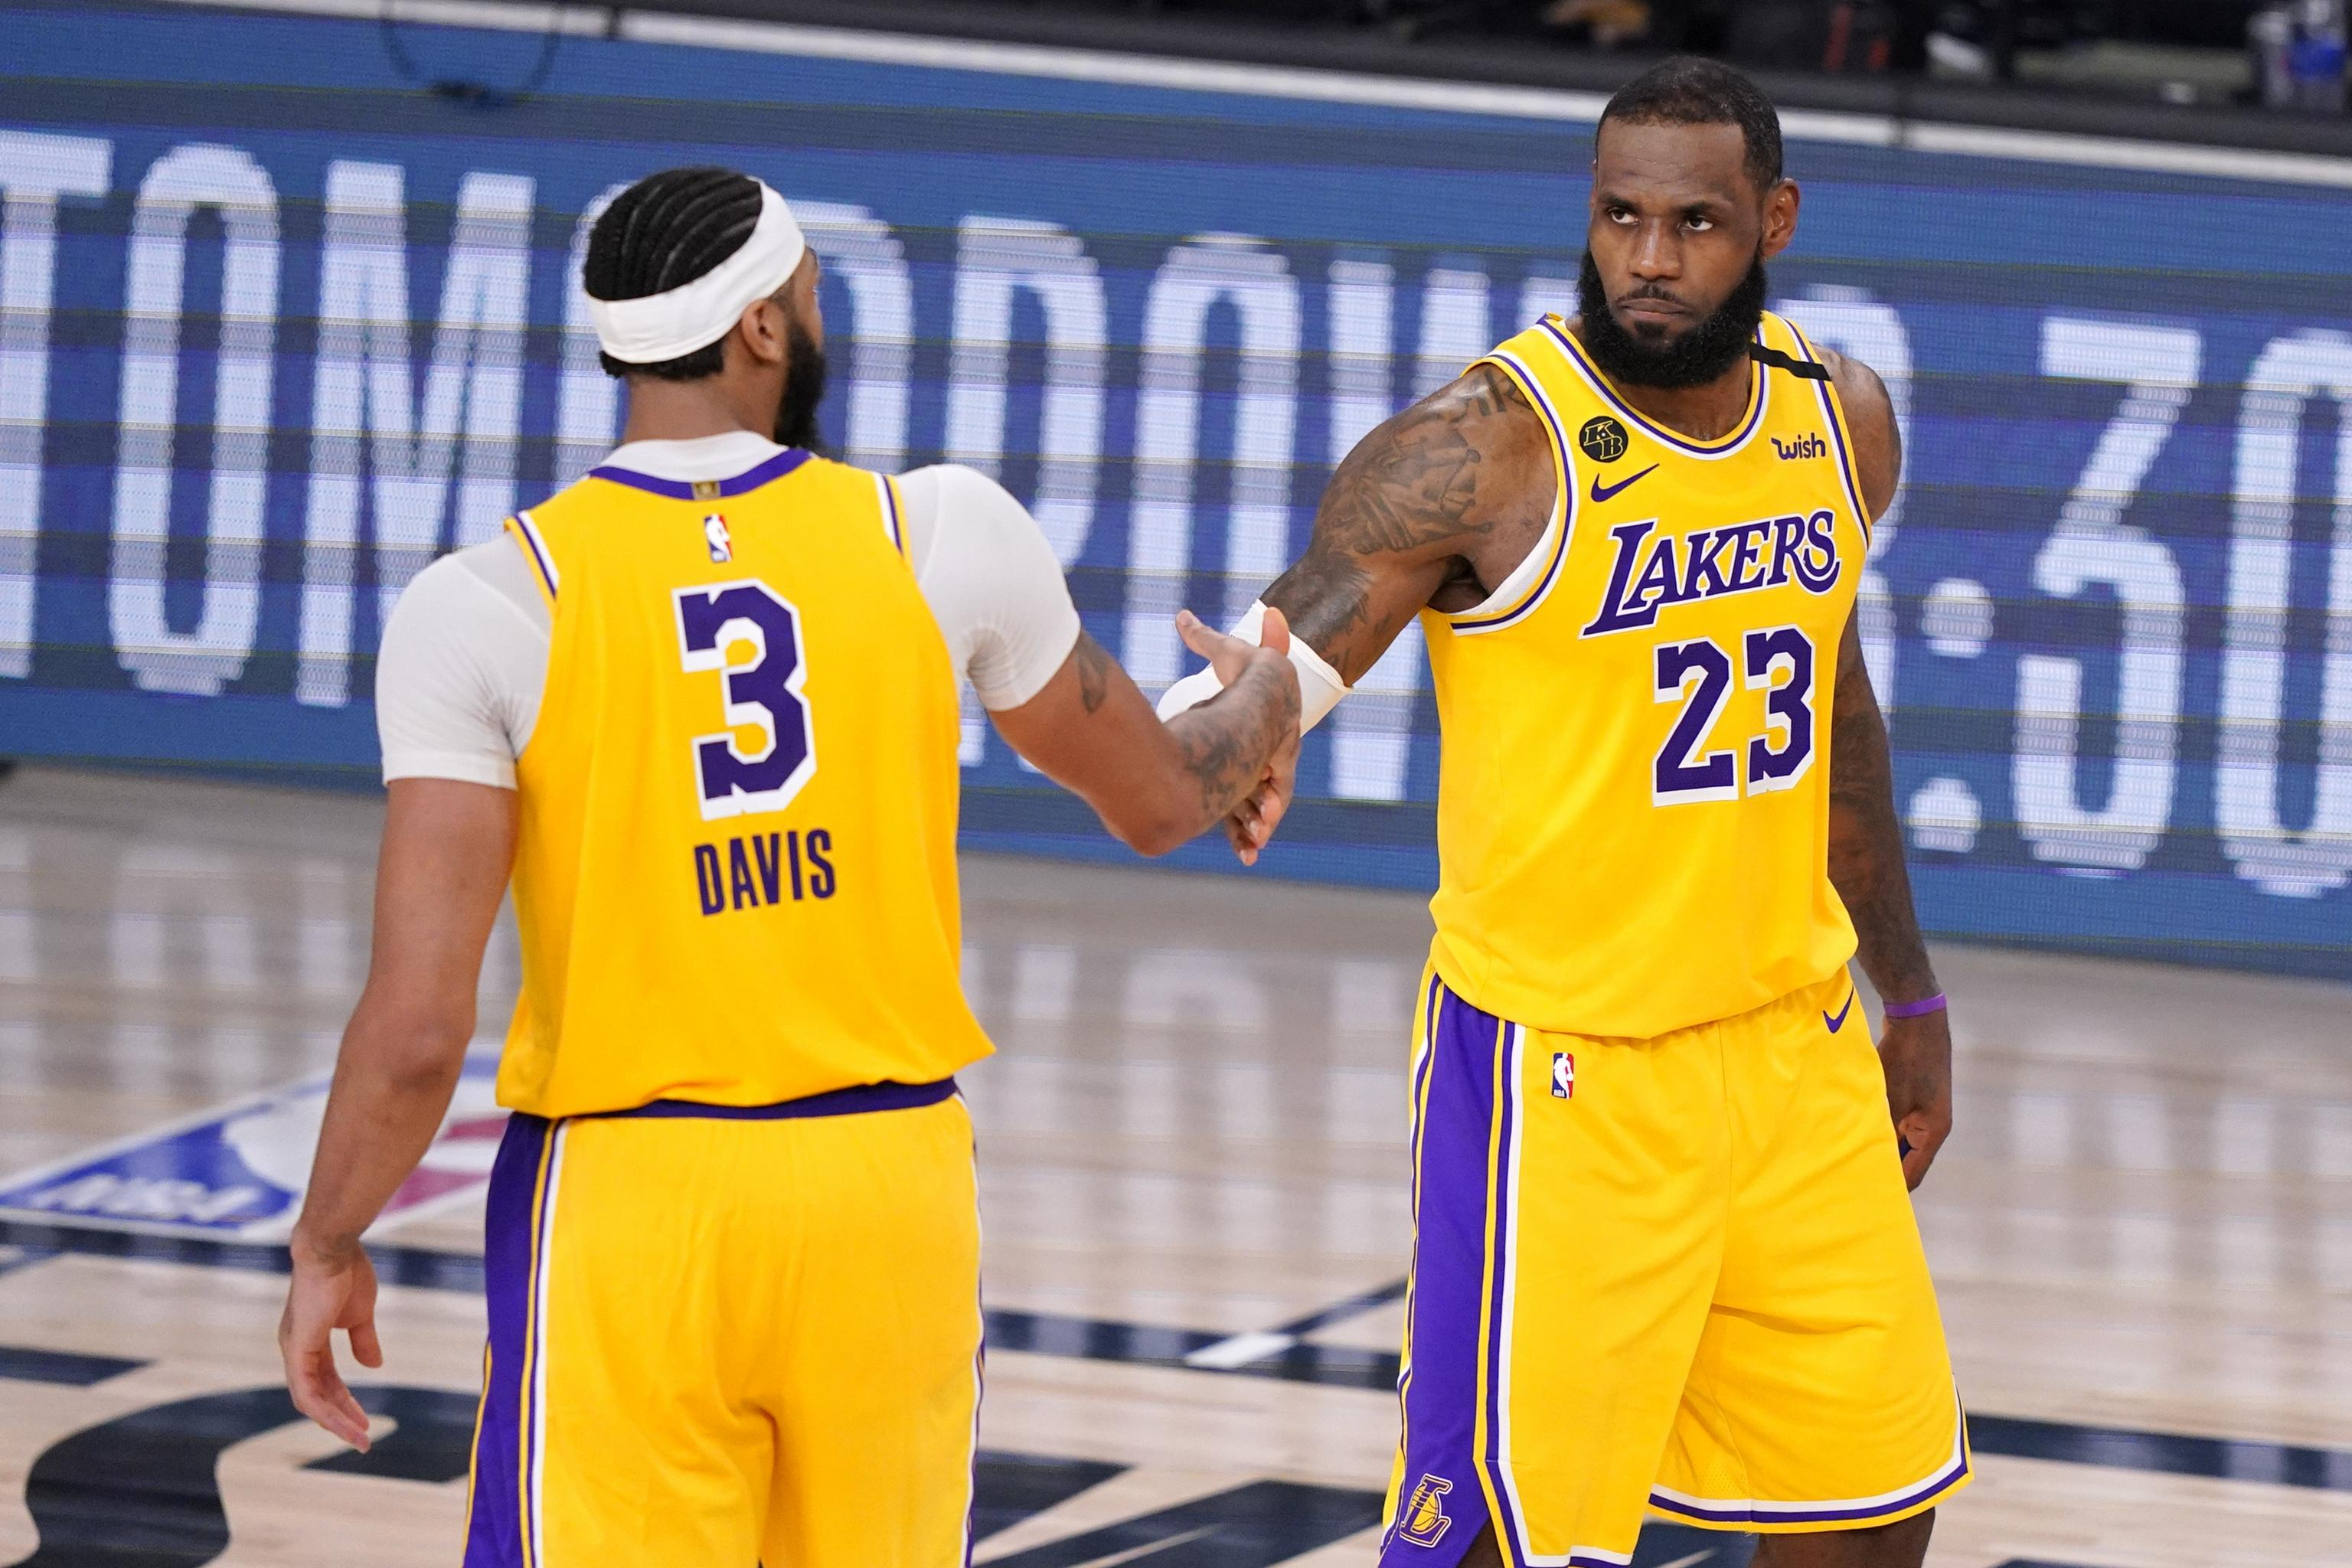 Heat Vs Lakers Game 1 Stats And Nba Finals 2020 Game 2 Schedule Odds Bleacher Report Latest News Videos And Highlights